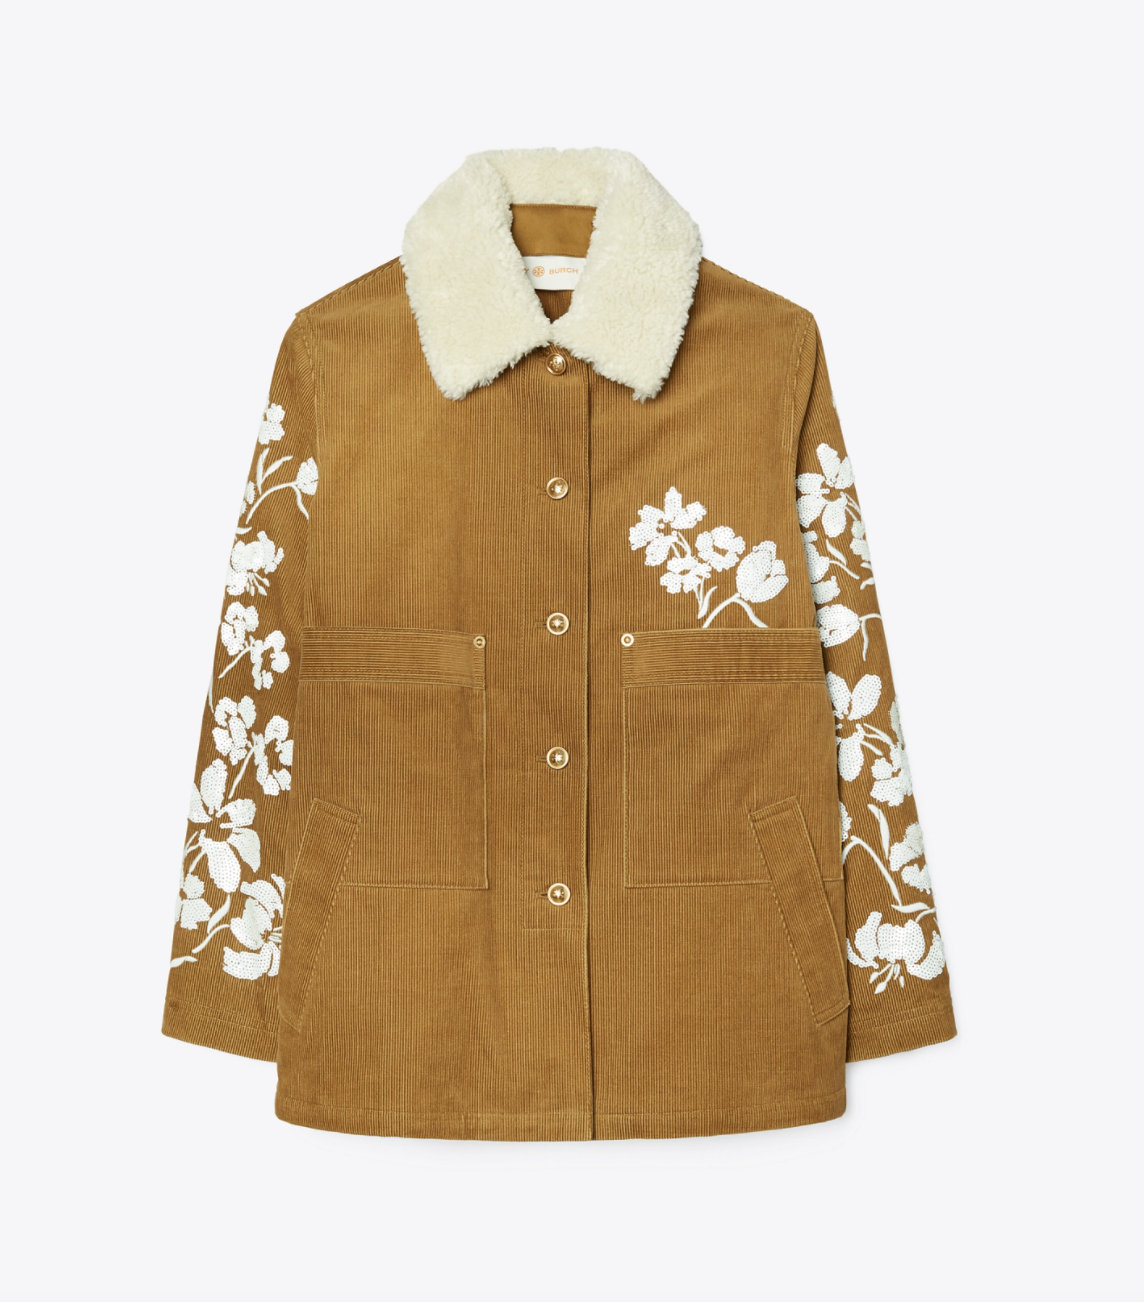 Tory Burch Embellished Barn Jacket